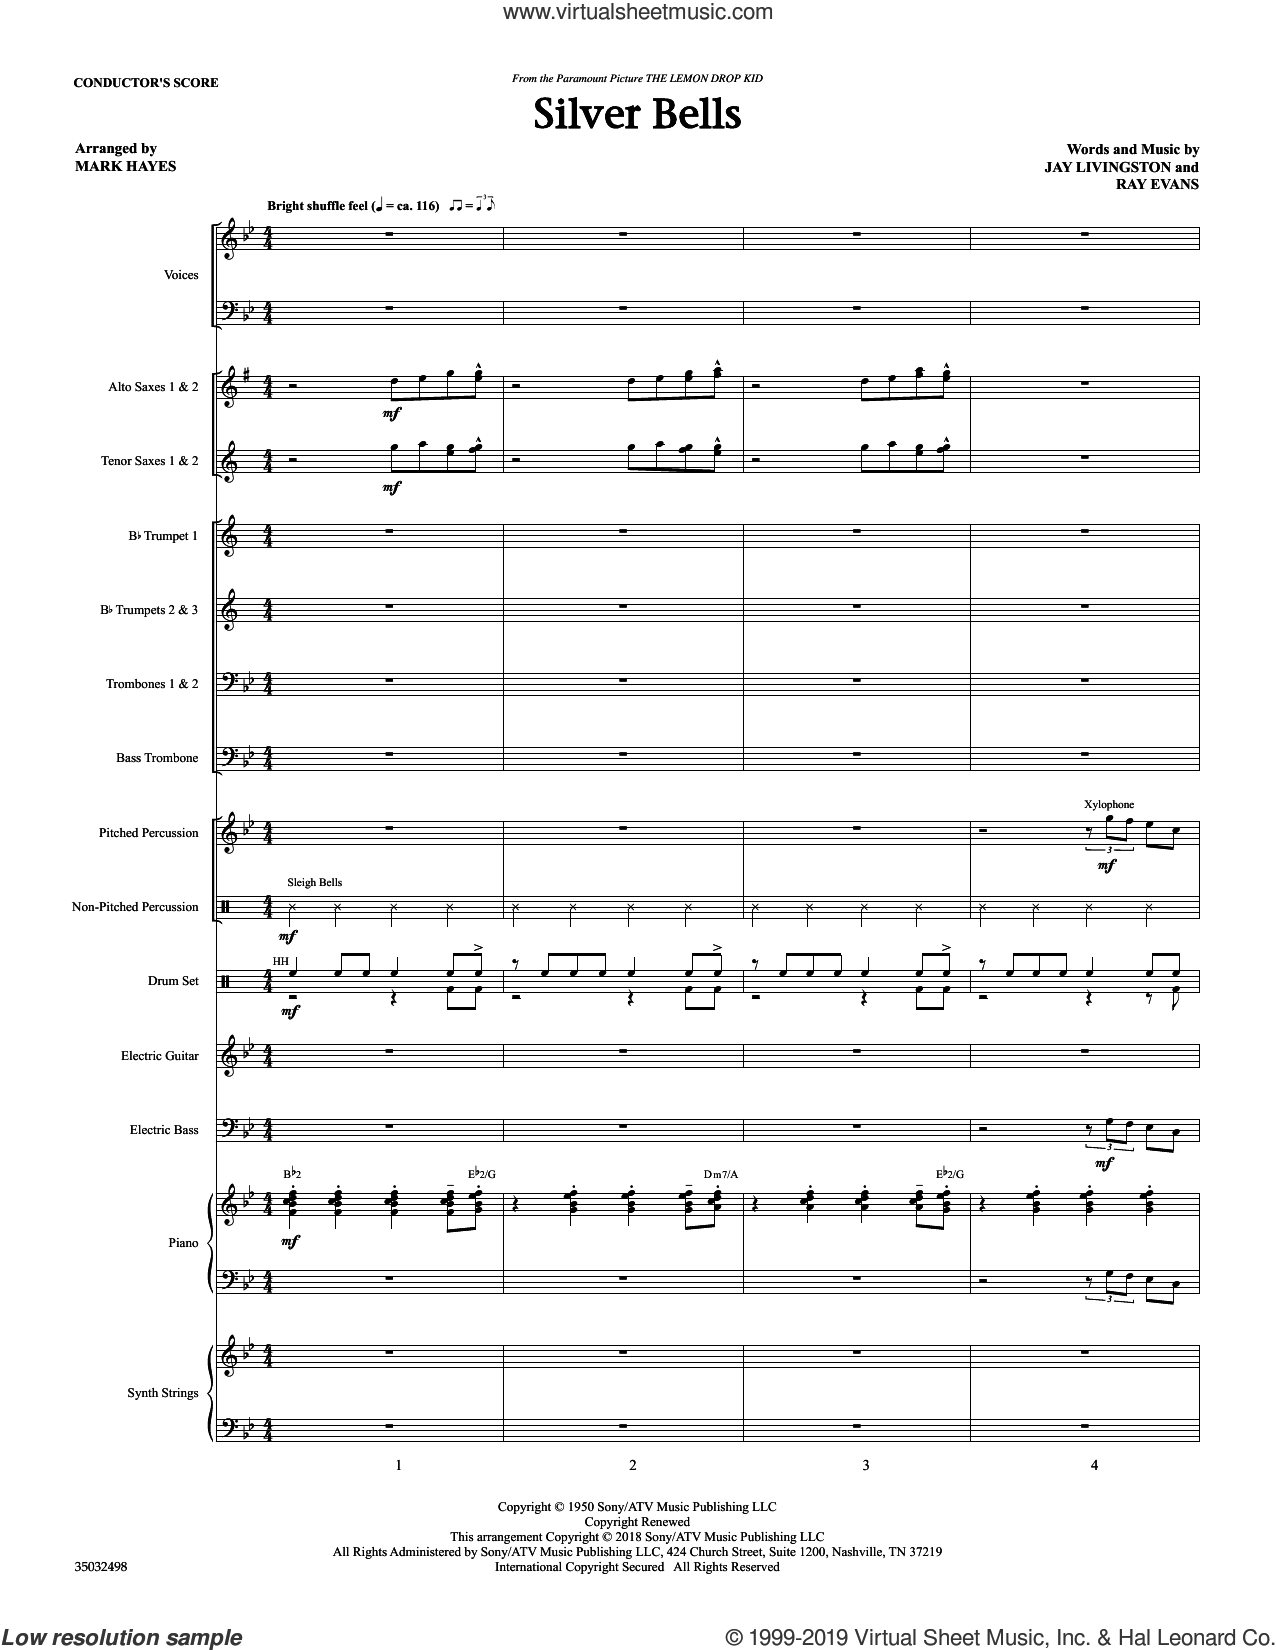 Silver Bells (arr. Mark Hayes) (COMPLETE) sheet music for orchestra/band by Mark Hayes, Jay Livingston, Jay Livingston & Ray Evans and Ray Evans, intermediate skill level